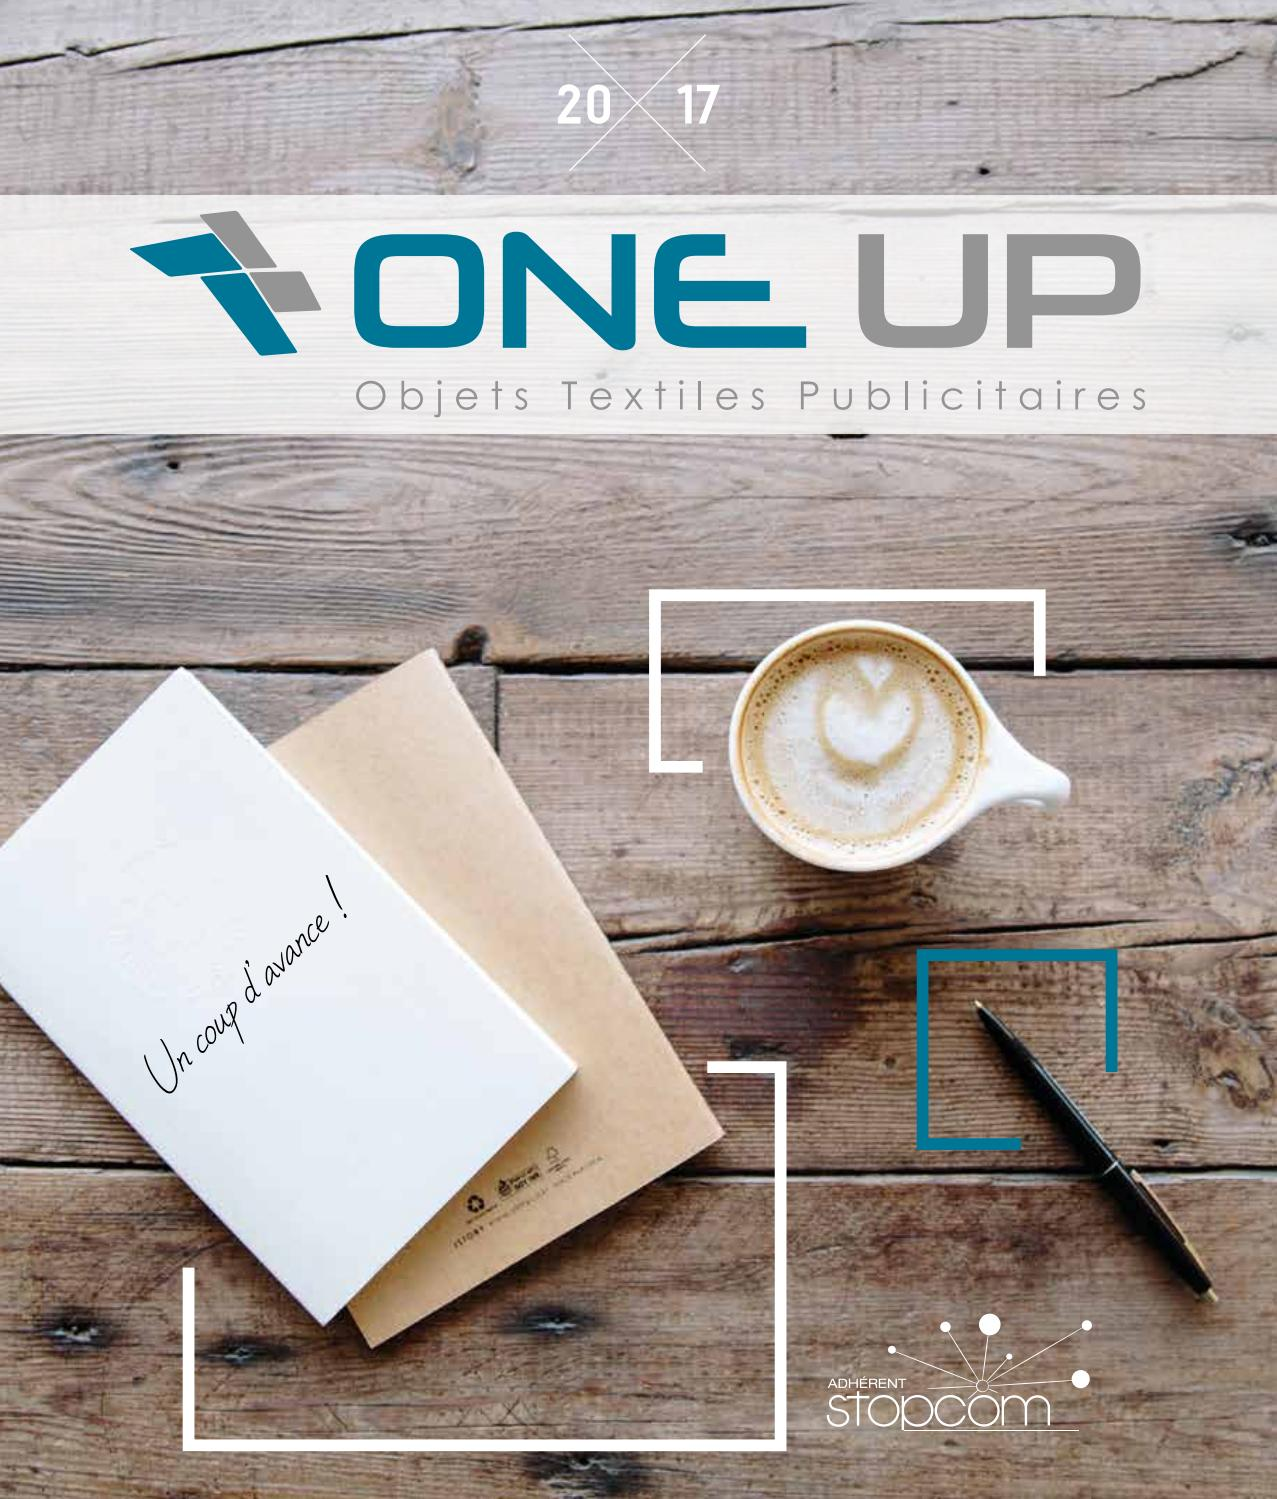 One up catalogue 2017 objets   textiles publicitaires by Objectif Goodies -  issuu b4f5028fc82